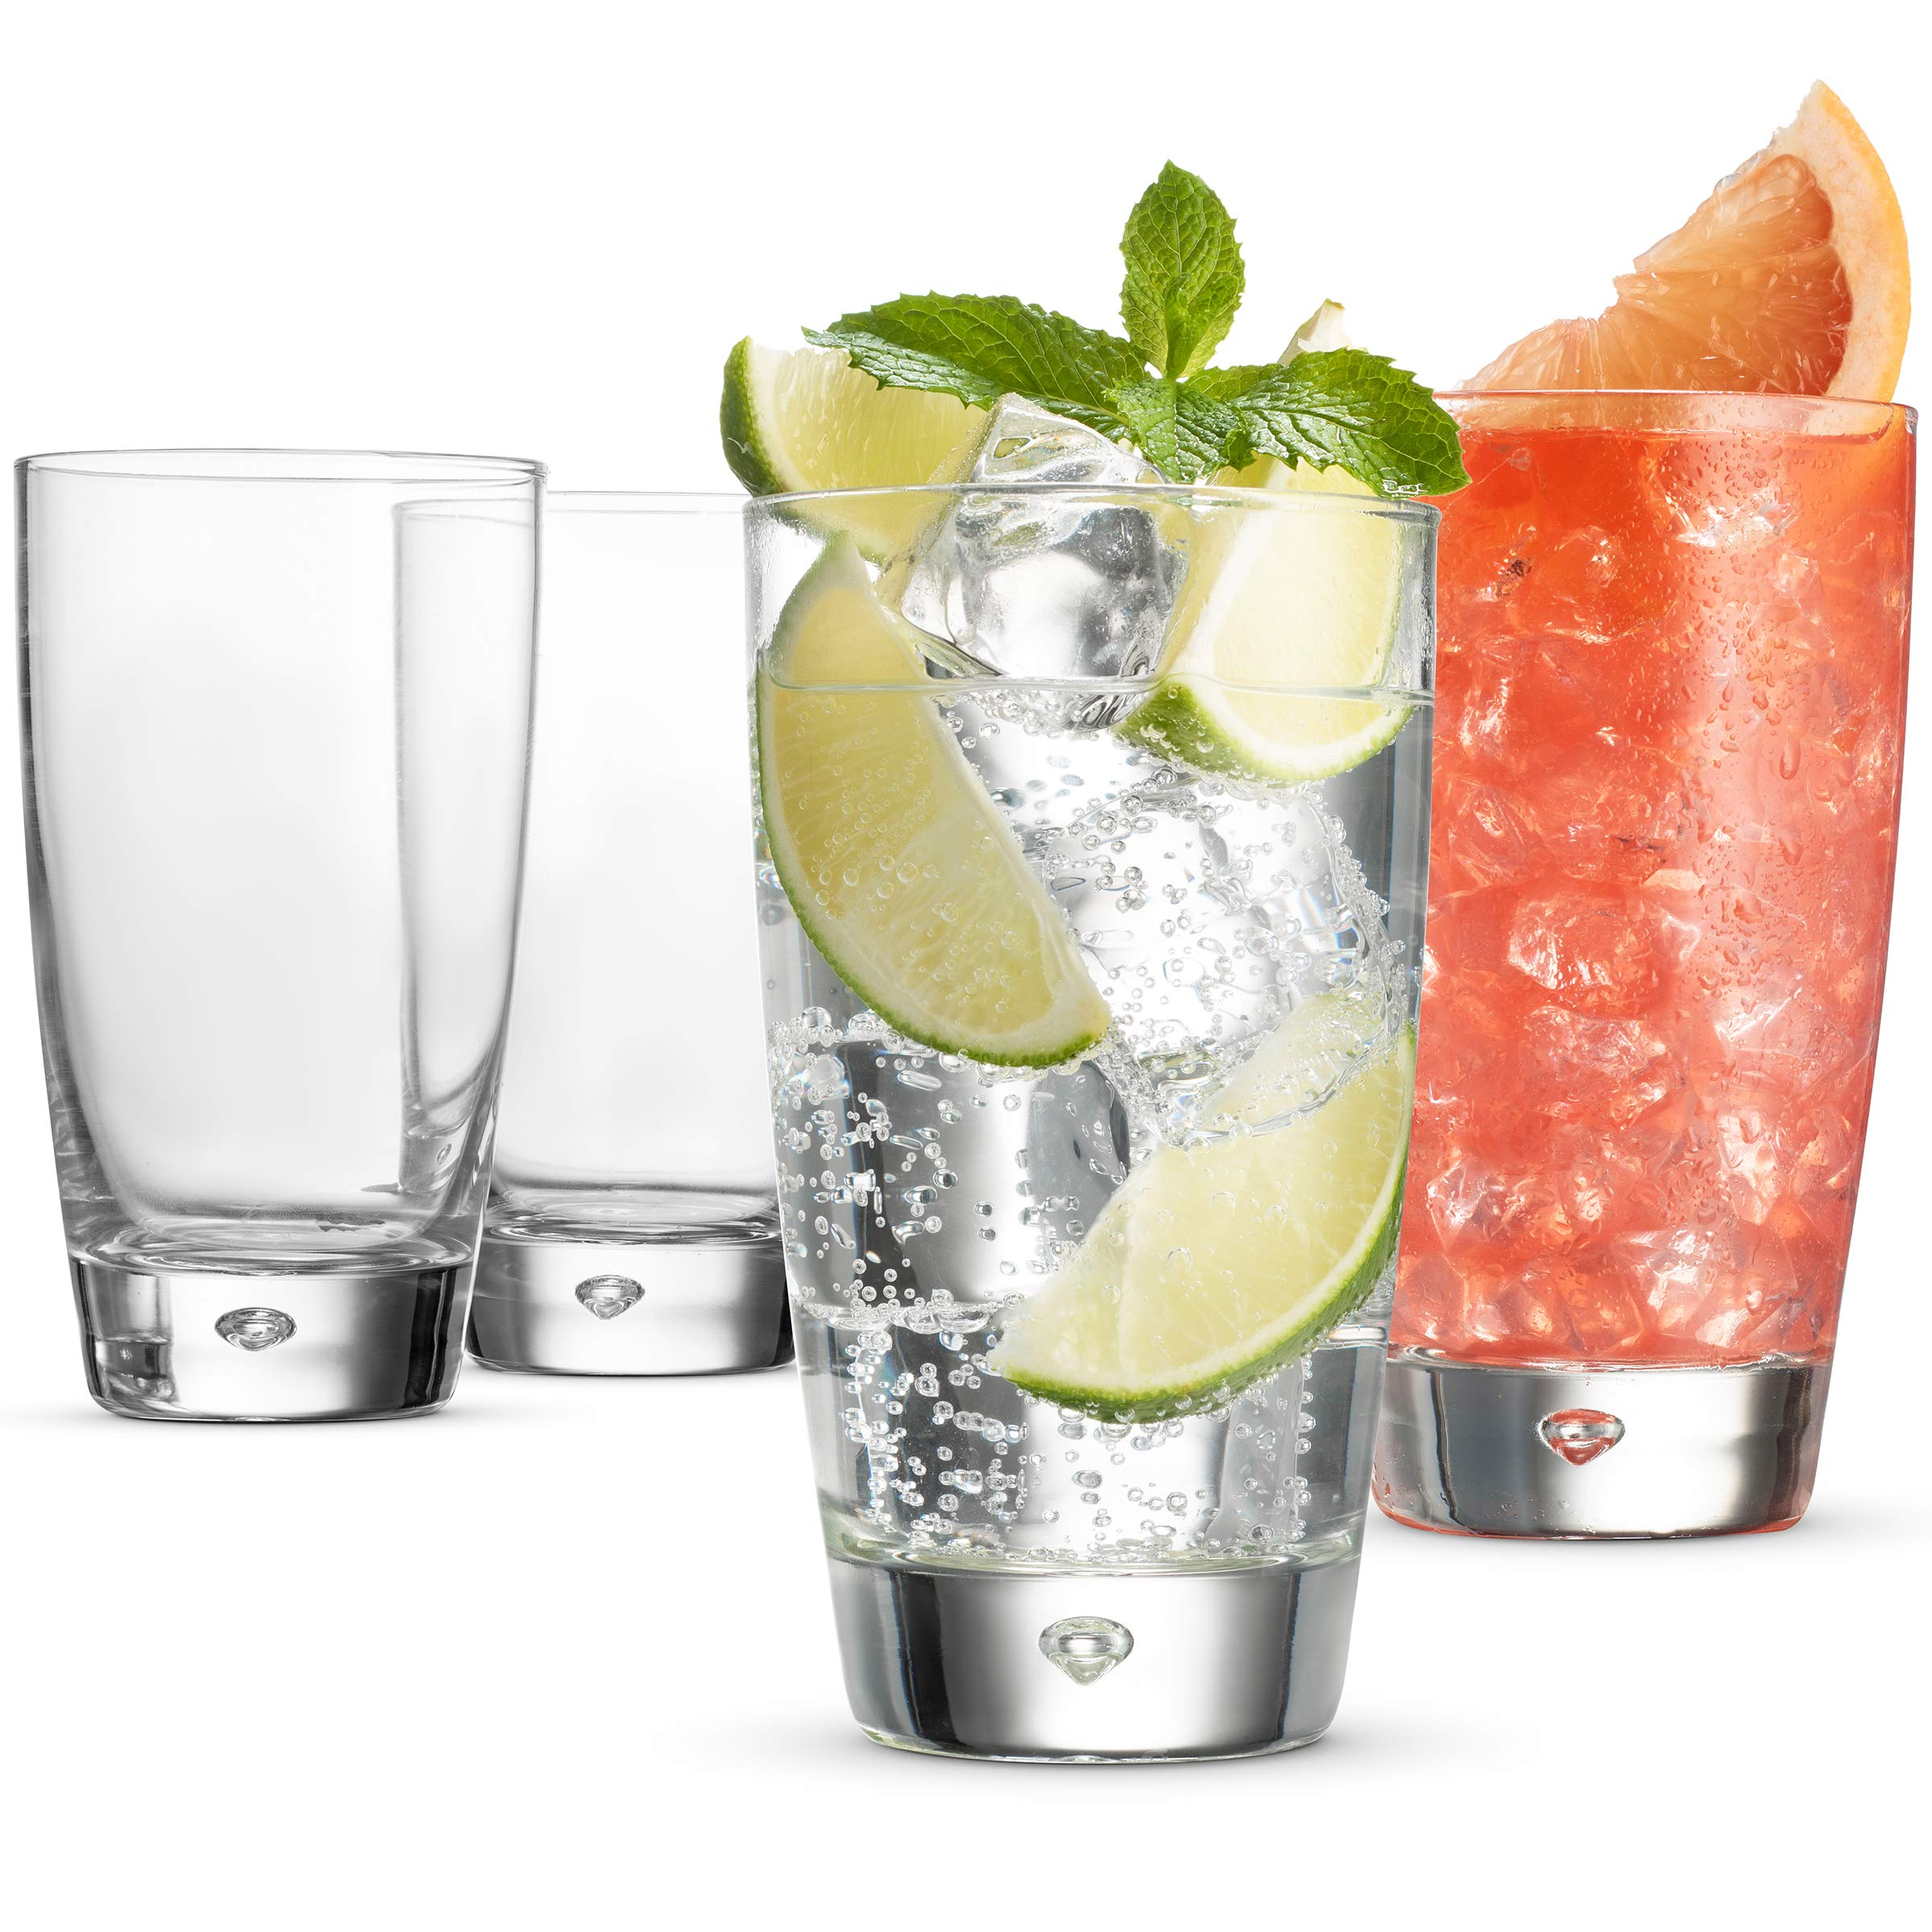 Bormioli Rocco LUNA Italian Drinking Glasses - 15 Ounce Collins glass (Set of 4) Mojito Glasses, Heavy Base Bar Glass - Highball Glasses for Water, Juice, Beer, Wine, Whiskey, and Cocktails, Lead-Free